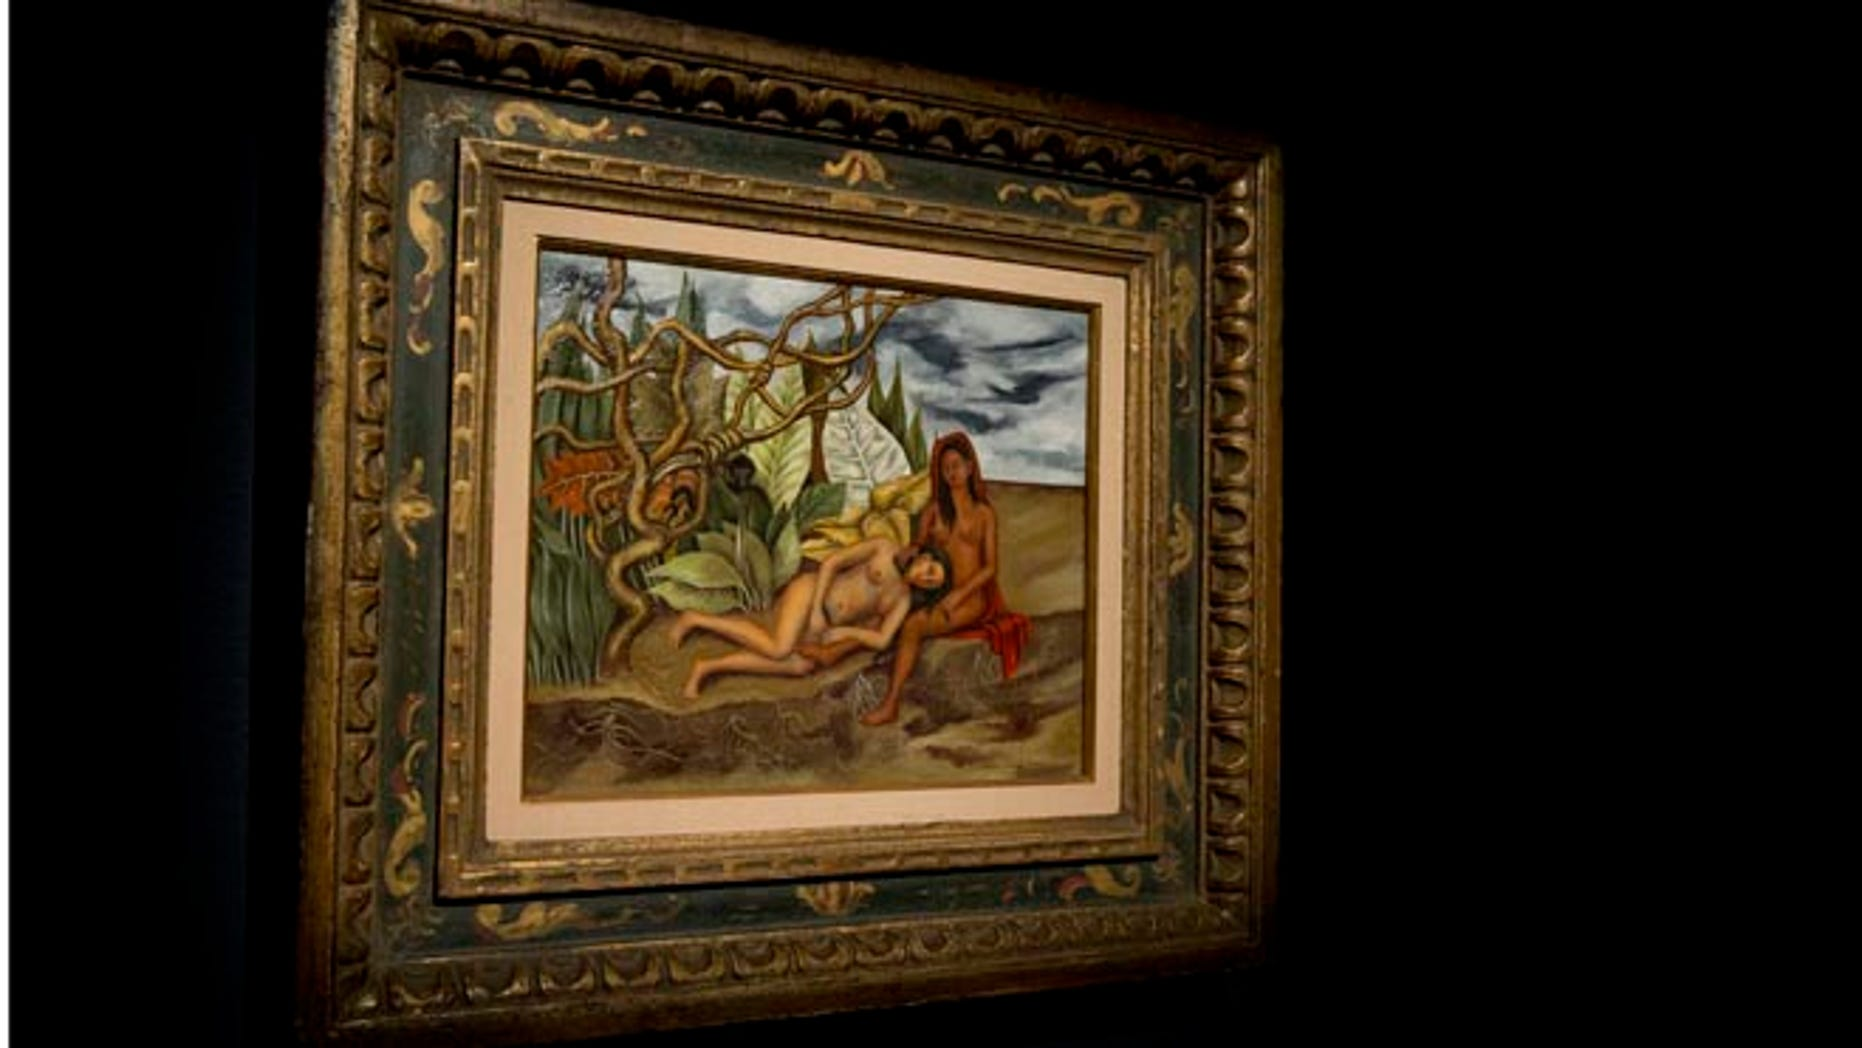 """EDS NOTE: NUDITY - In this Friday, April 29, 2016 file photo, the painting, """"Two Nudes in the Forest (The Land Itself)"""" by Frida Khalo, is on display during the press preview of """"Bound to Fail"""" at Christie's auction house in New York. The painting by Kahlo is poised to set a new auction record for the Mexican painter at Christieâs sale of impressionist and modern art on Thursday evening, May 12, 2016. (AP Photo/Mary Altaffer, File)"""